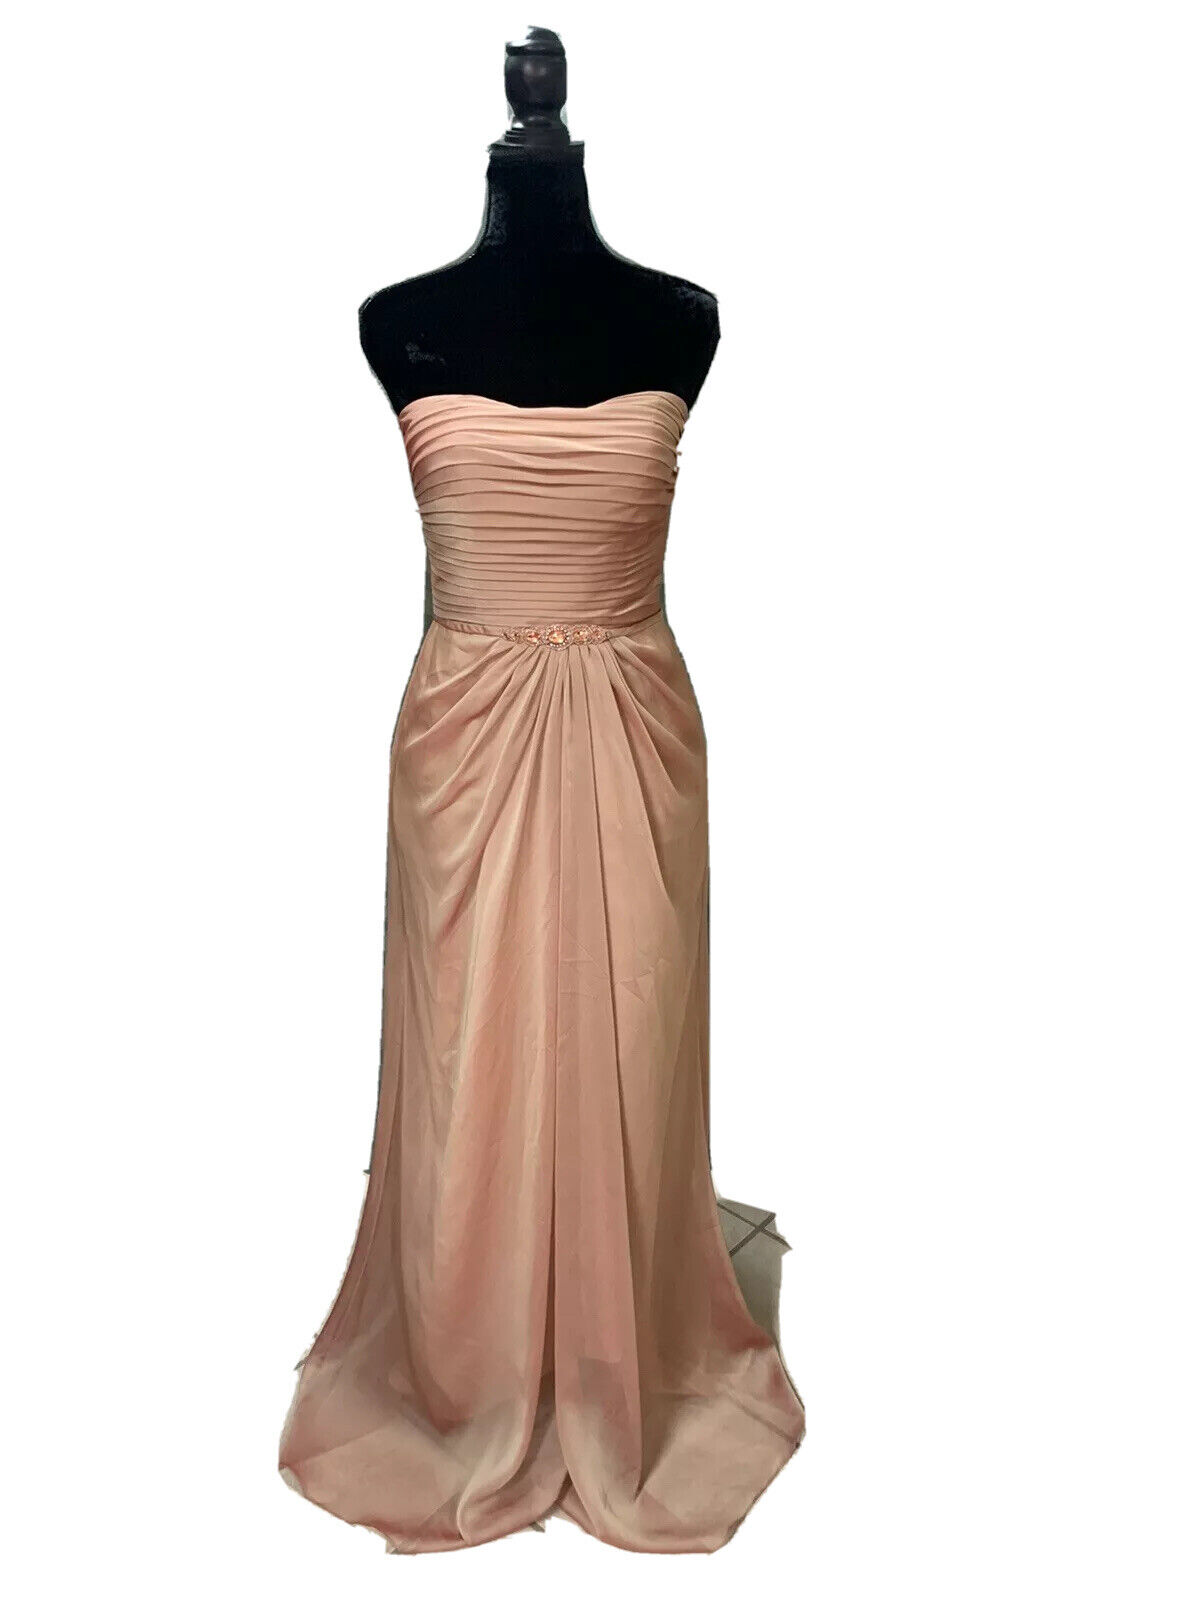 Size 8 Prom Party Homecoming Dance Bridesmaid Formal Dress